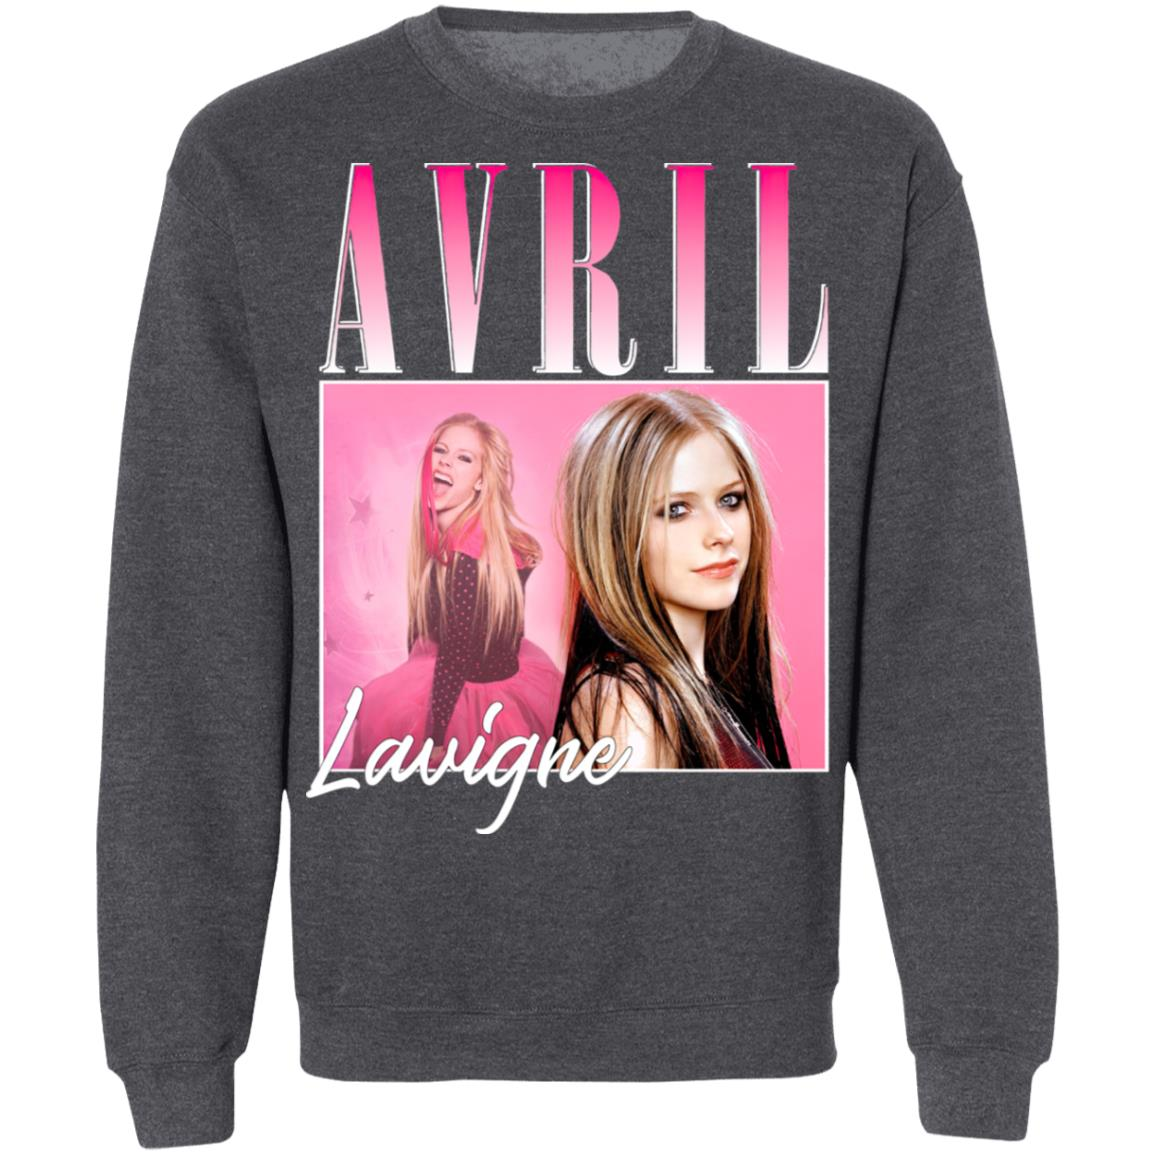 NEW LIMITED Avril Lavigne pink T-SHIRT S-4XL